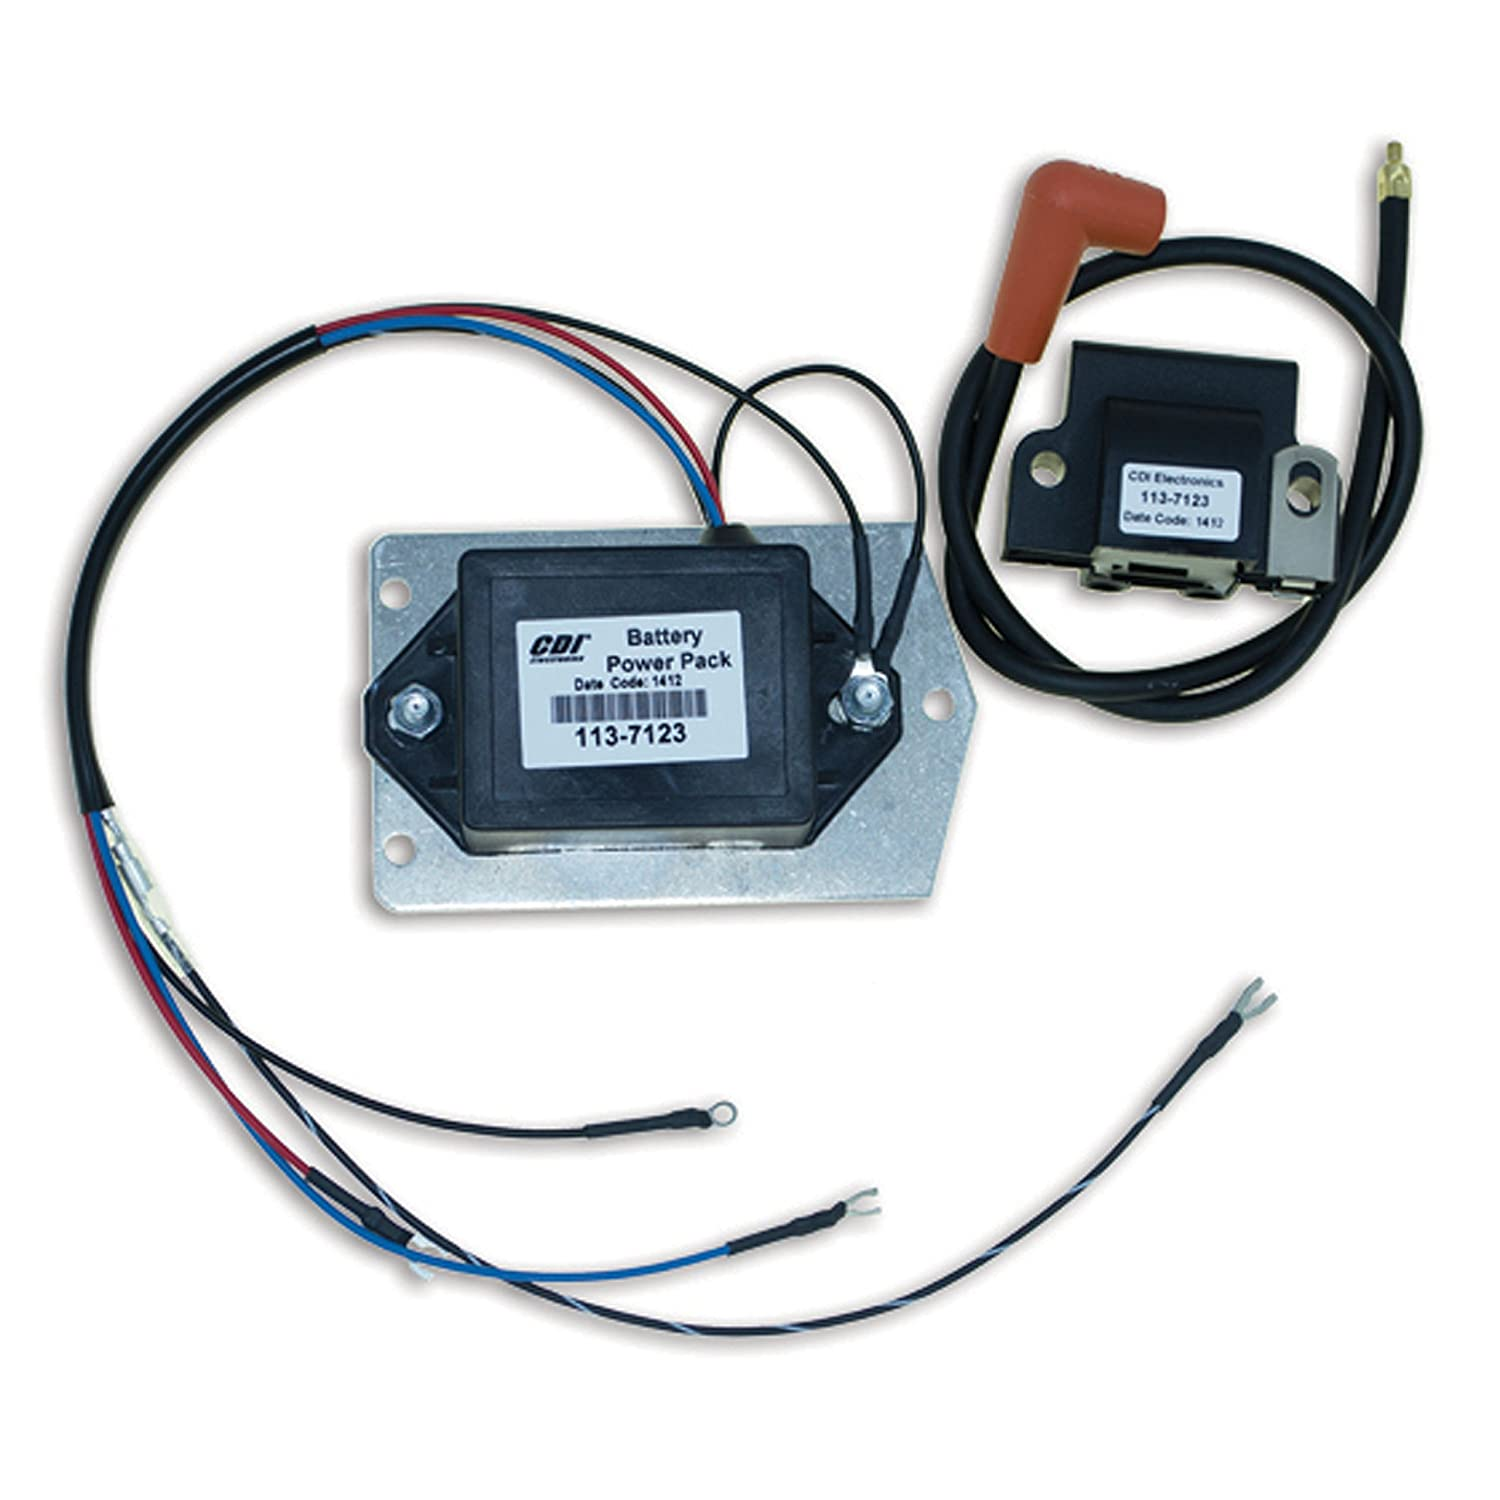 Johnson//Evinrude - 3 Cyl 1968-1972 CDI Electronics 113-7123 Battery Power Pack